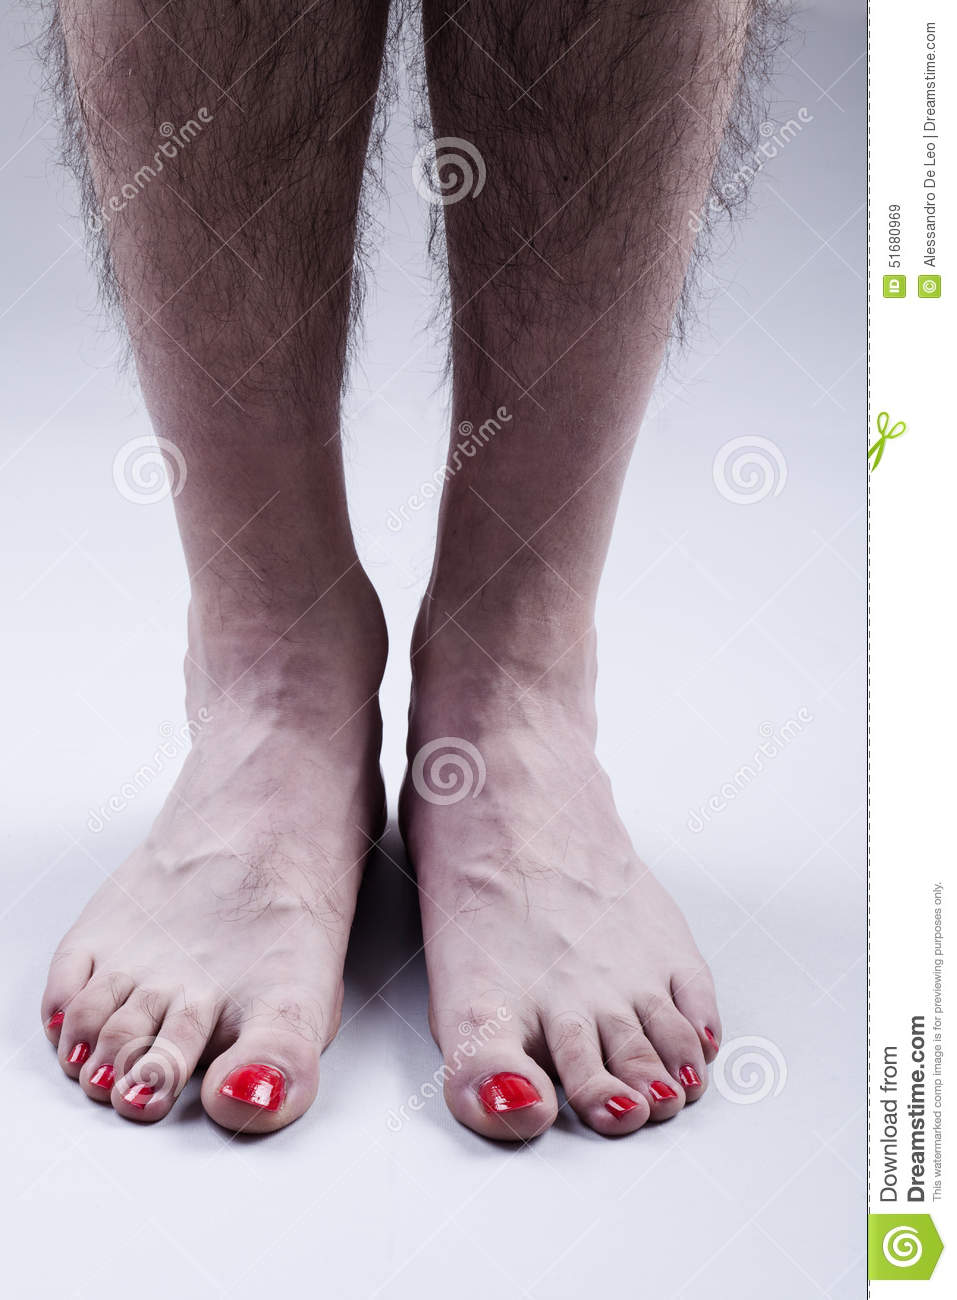 Hairy women and feet